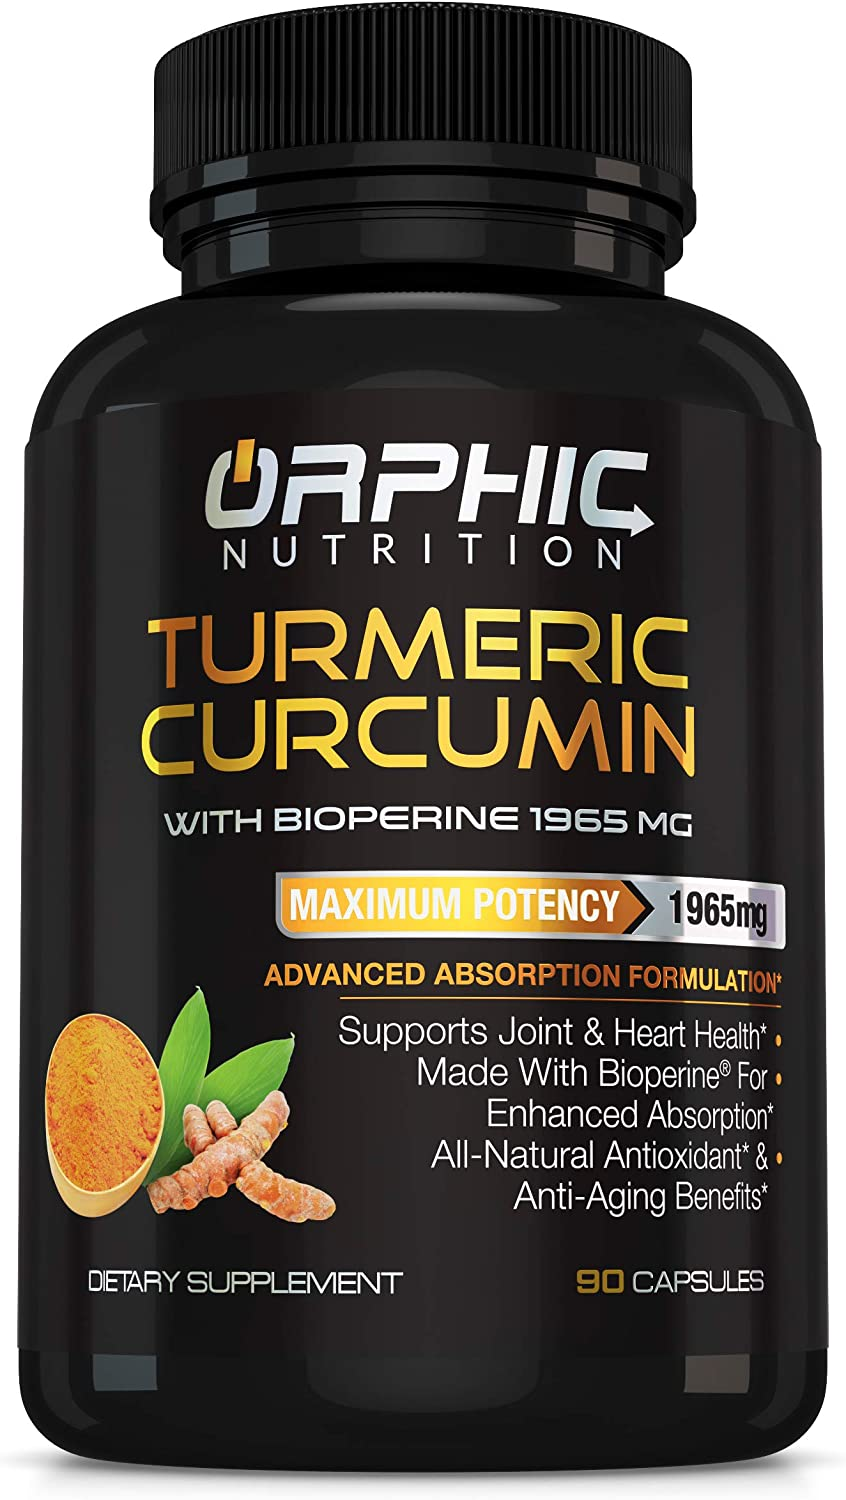 Turmeric excellence Curcumin with Bioperine - Natural 1965mg New products world's highest quality popular Max Su Potency